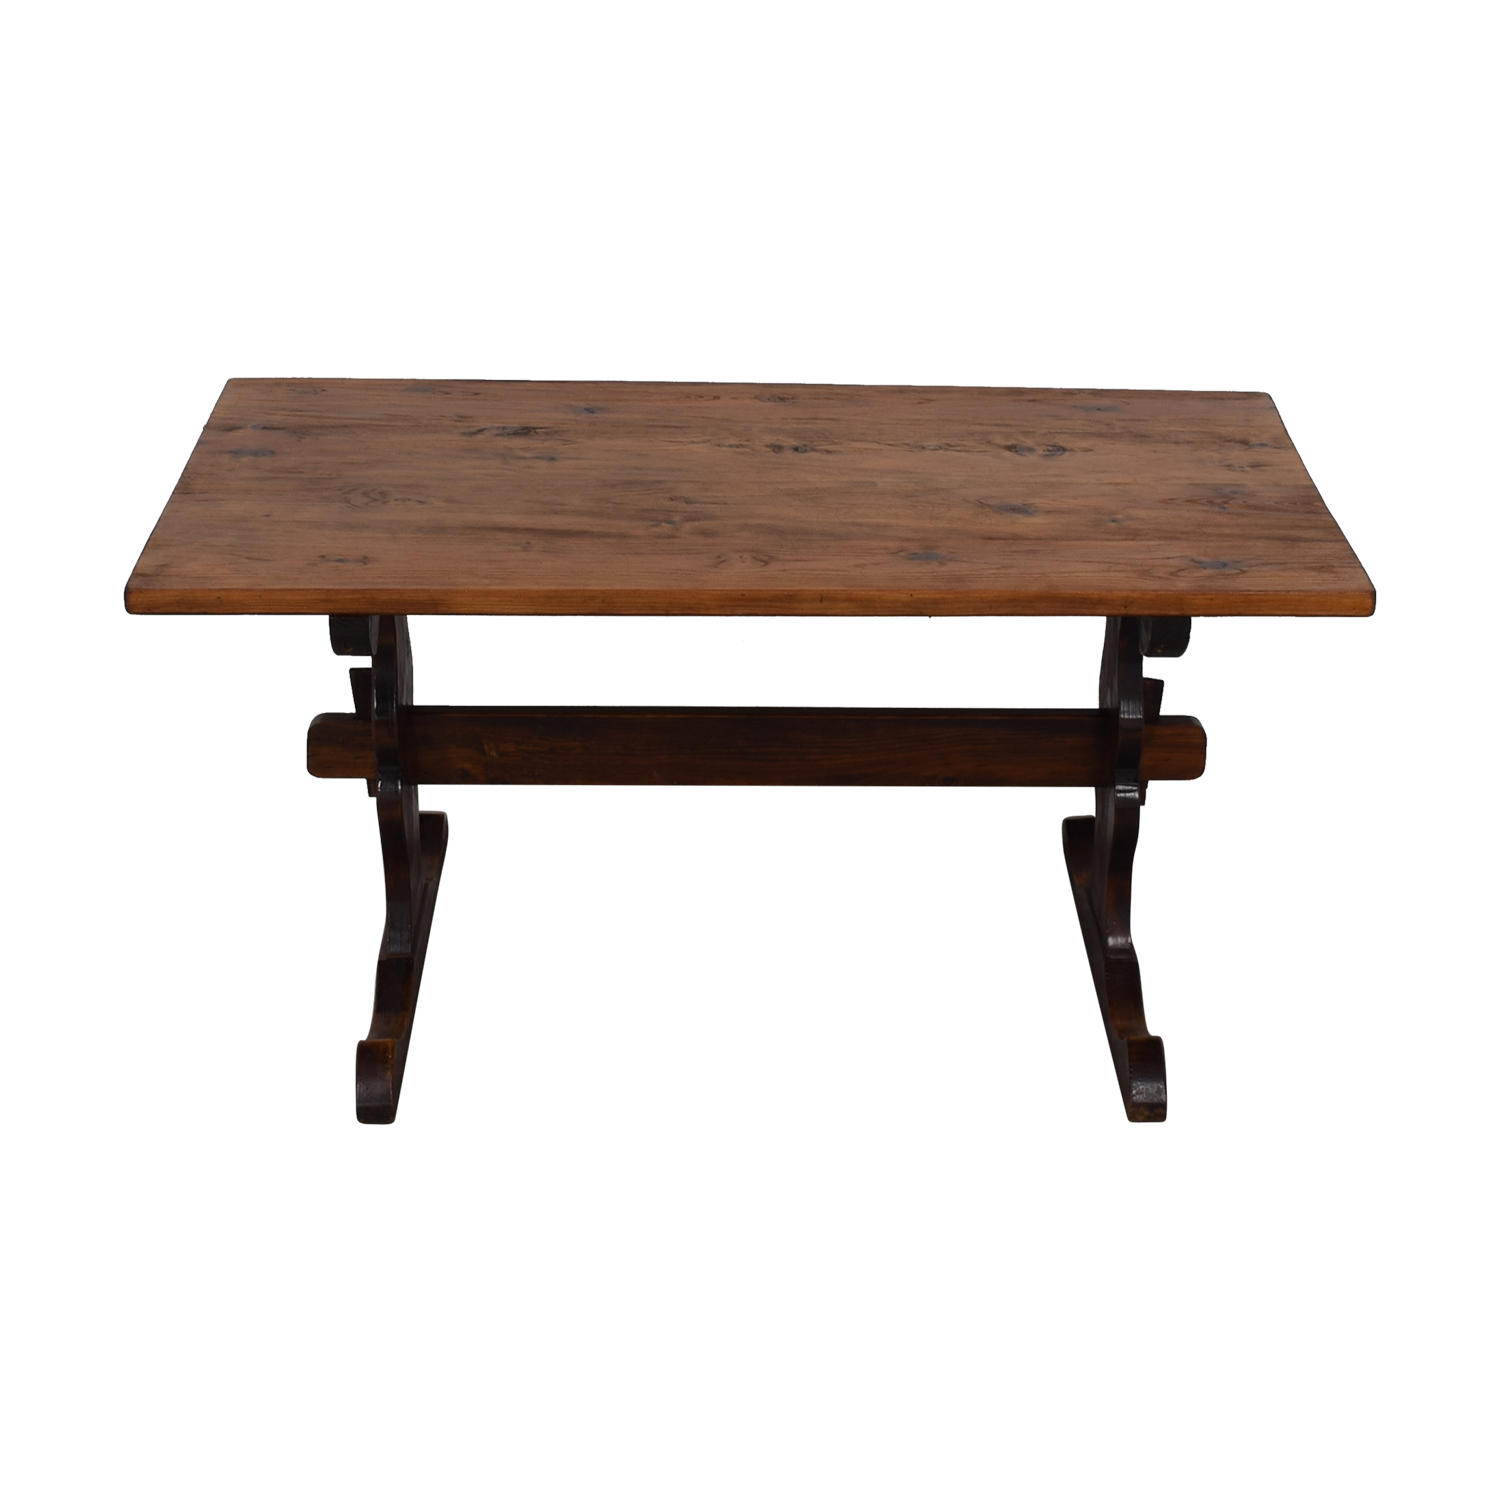 South African Pine Dining Room Table nj